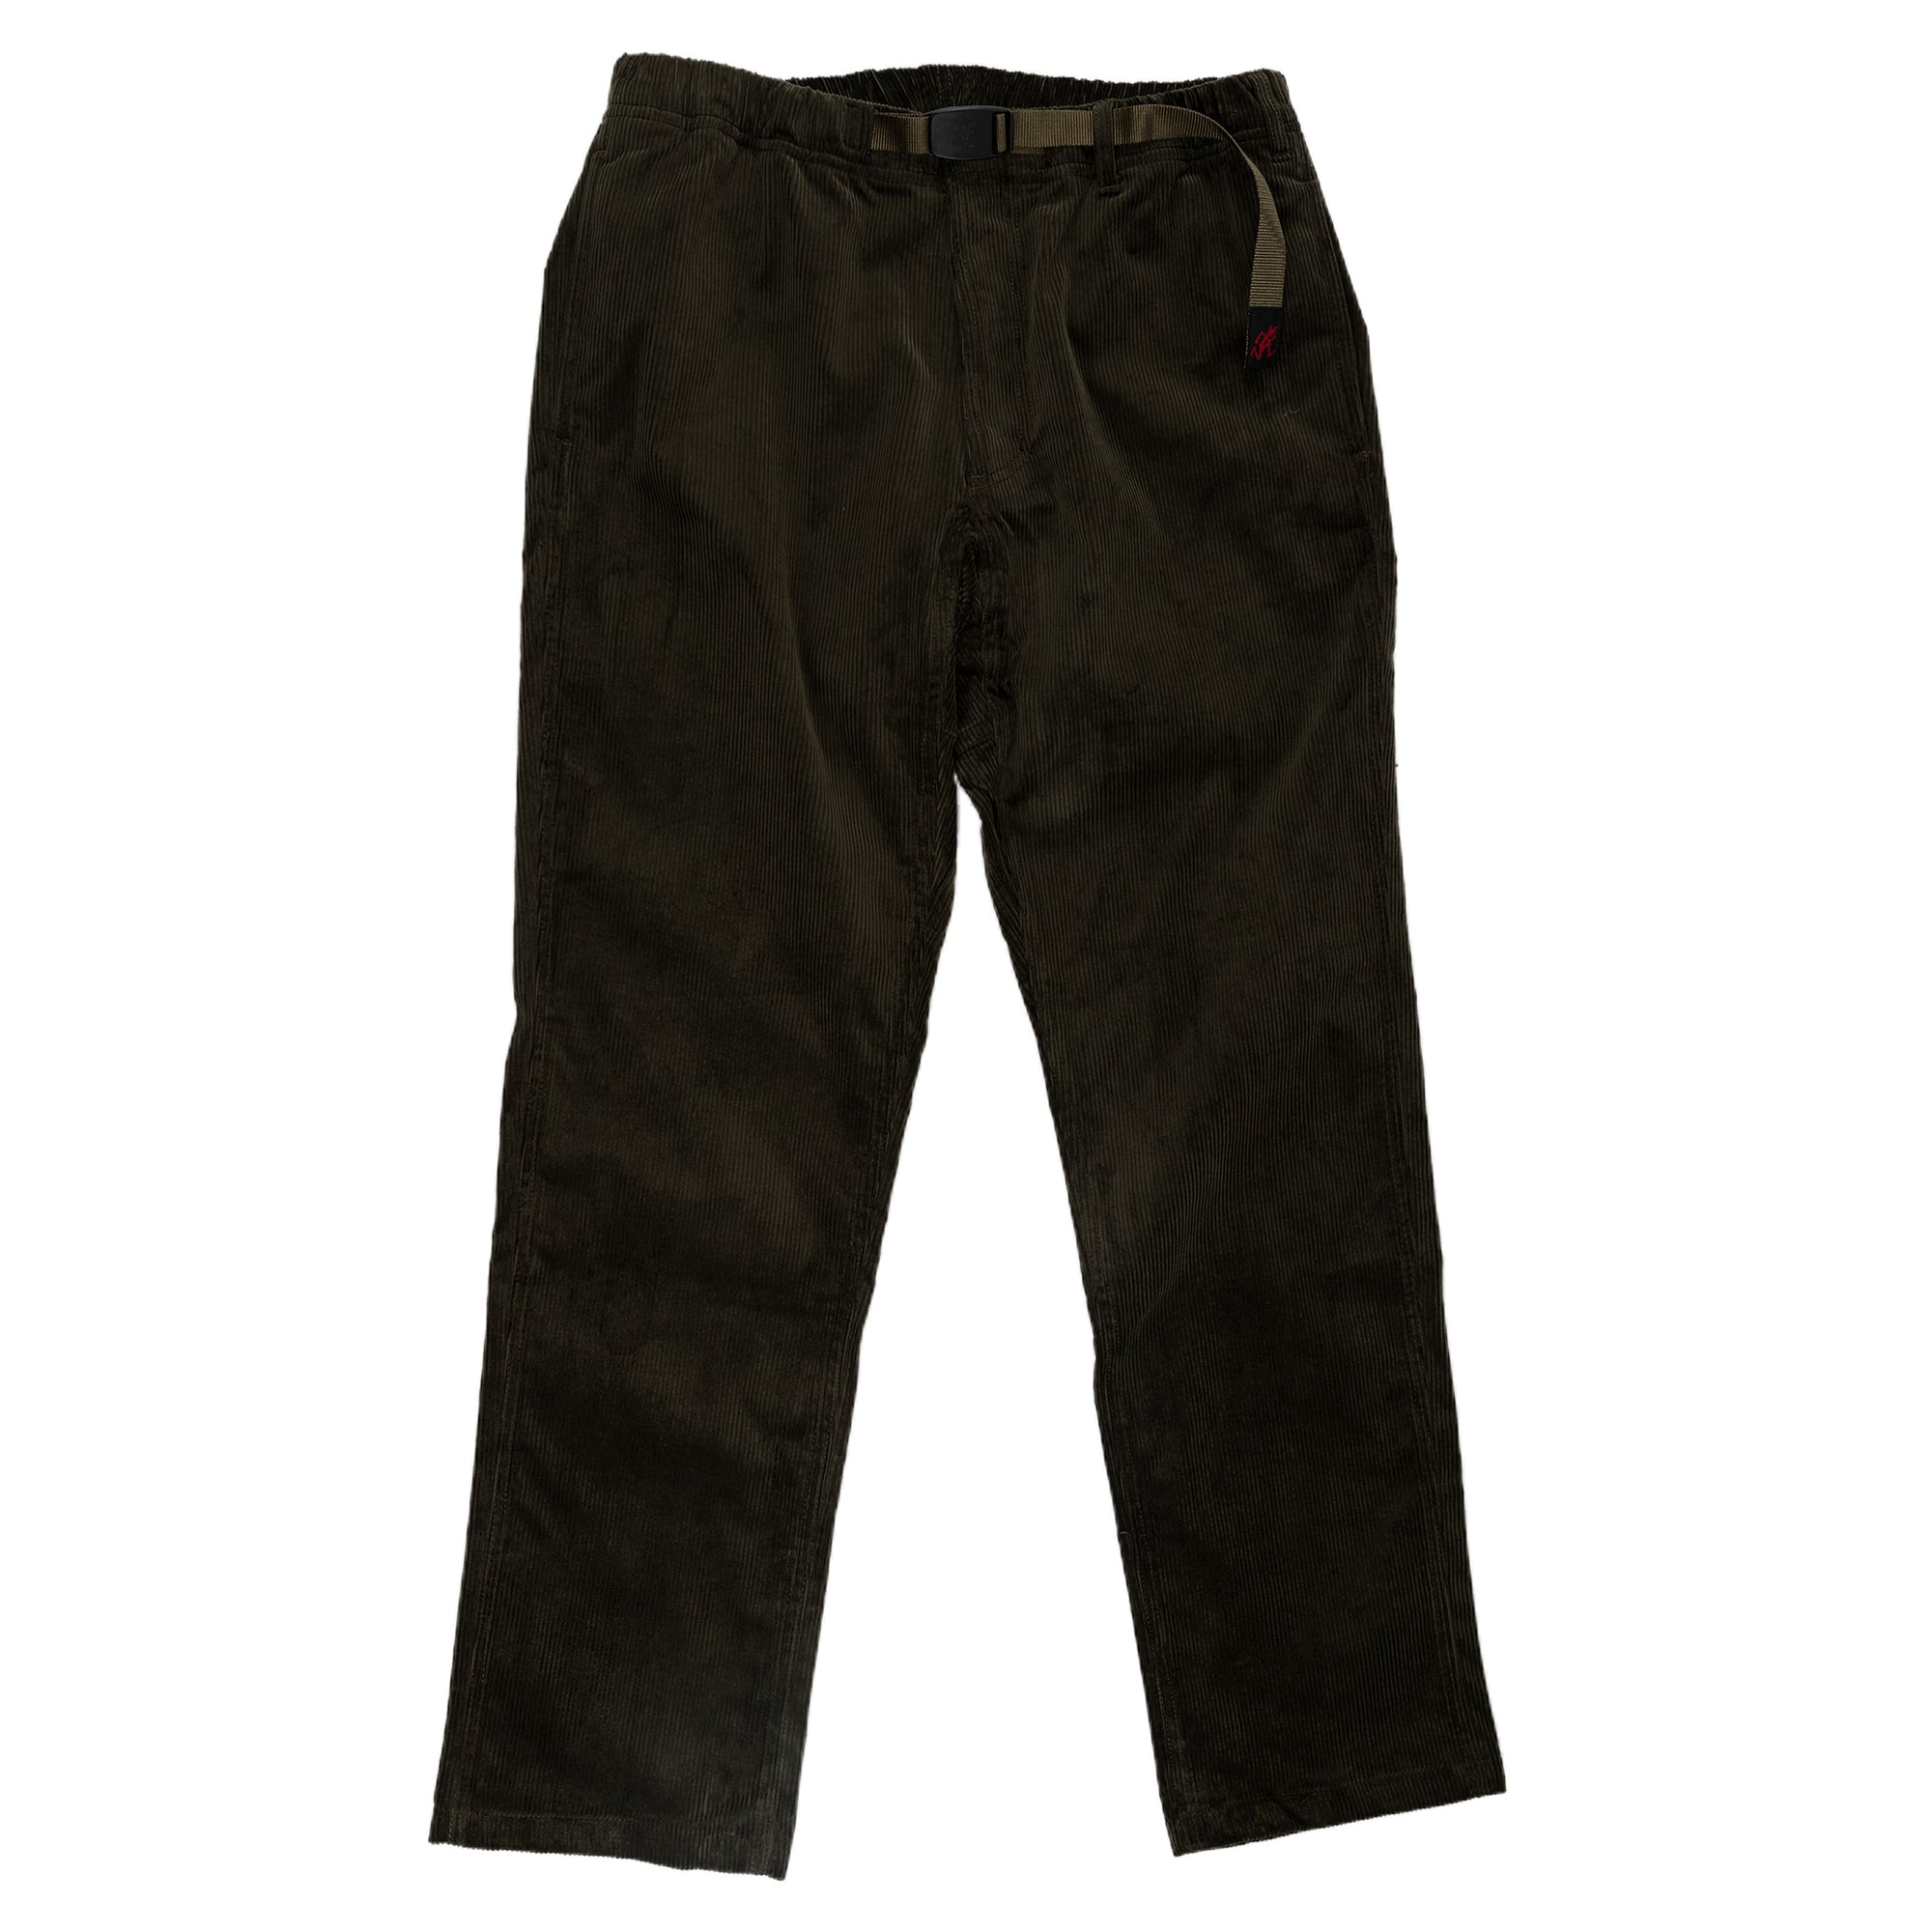 Gramicci Corduroy NN Pants Just Cut in Olive front